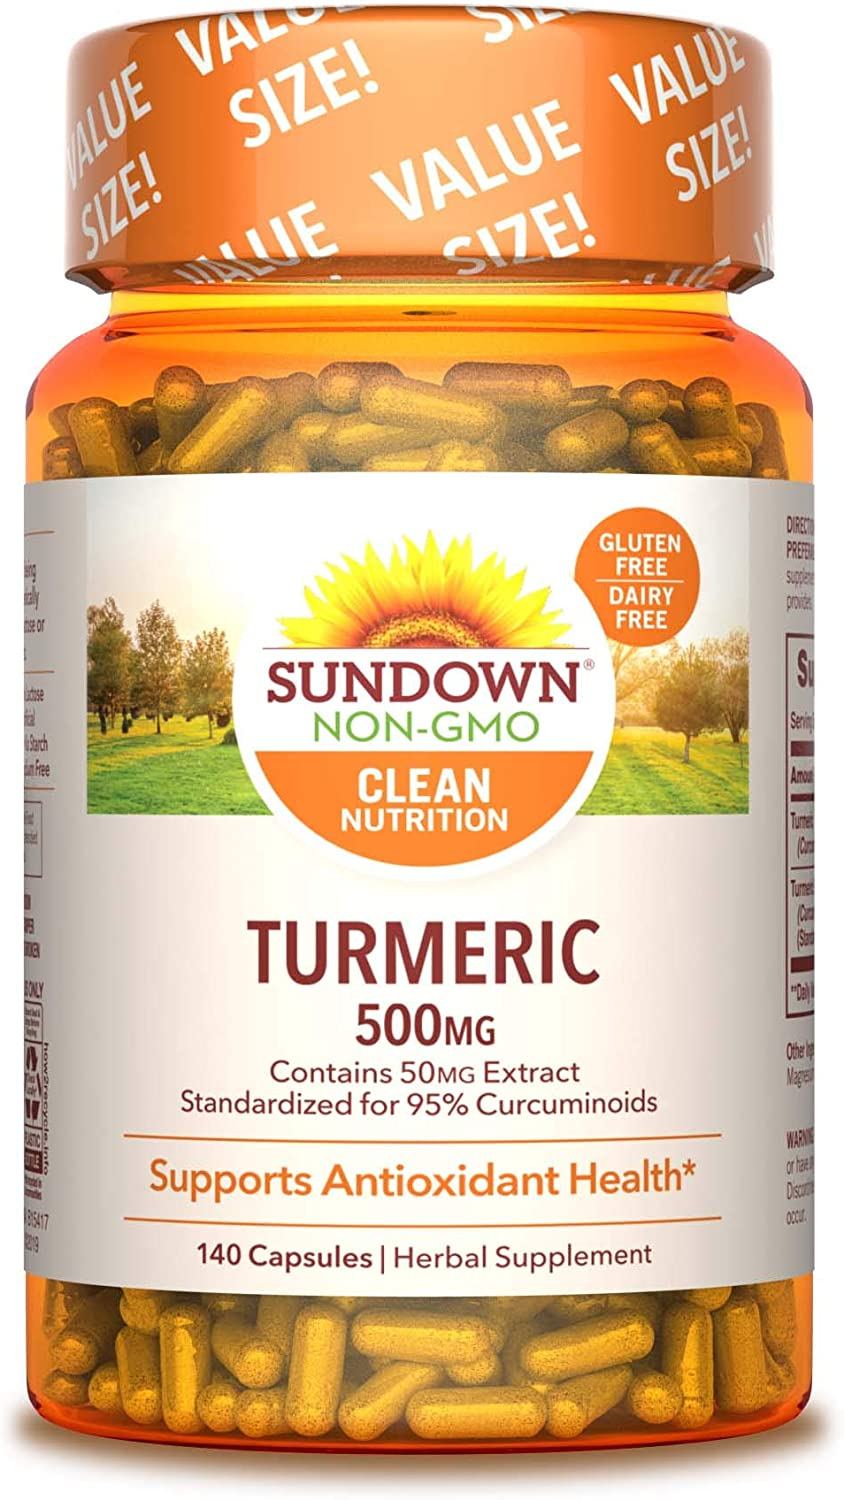 Turmeric Herbal Supplements by Sundown, for Antioxidant Health, Non-GMOˆ, Free of Gluten, Dairy, Artificial Flavors, 500mg, 140 Capsules